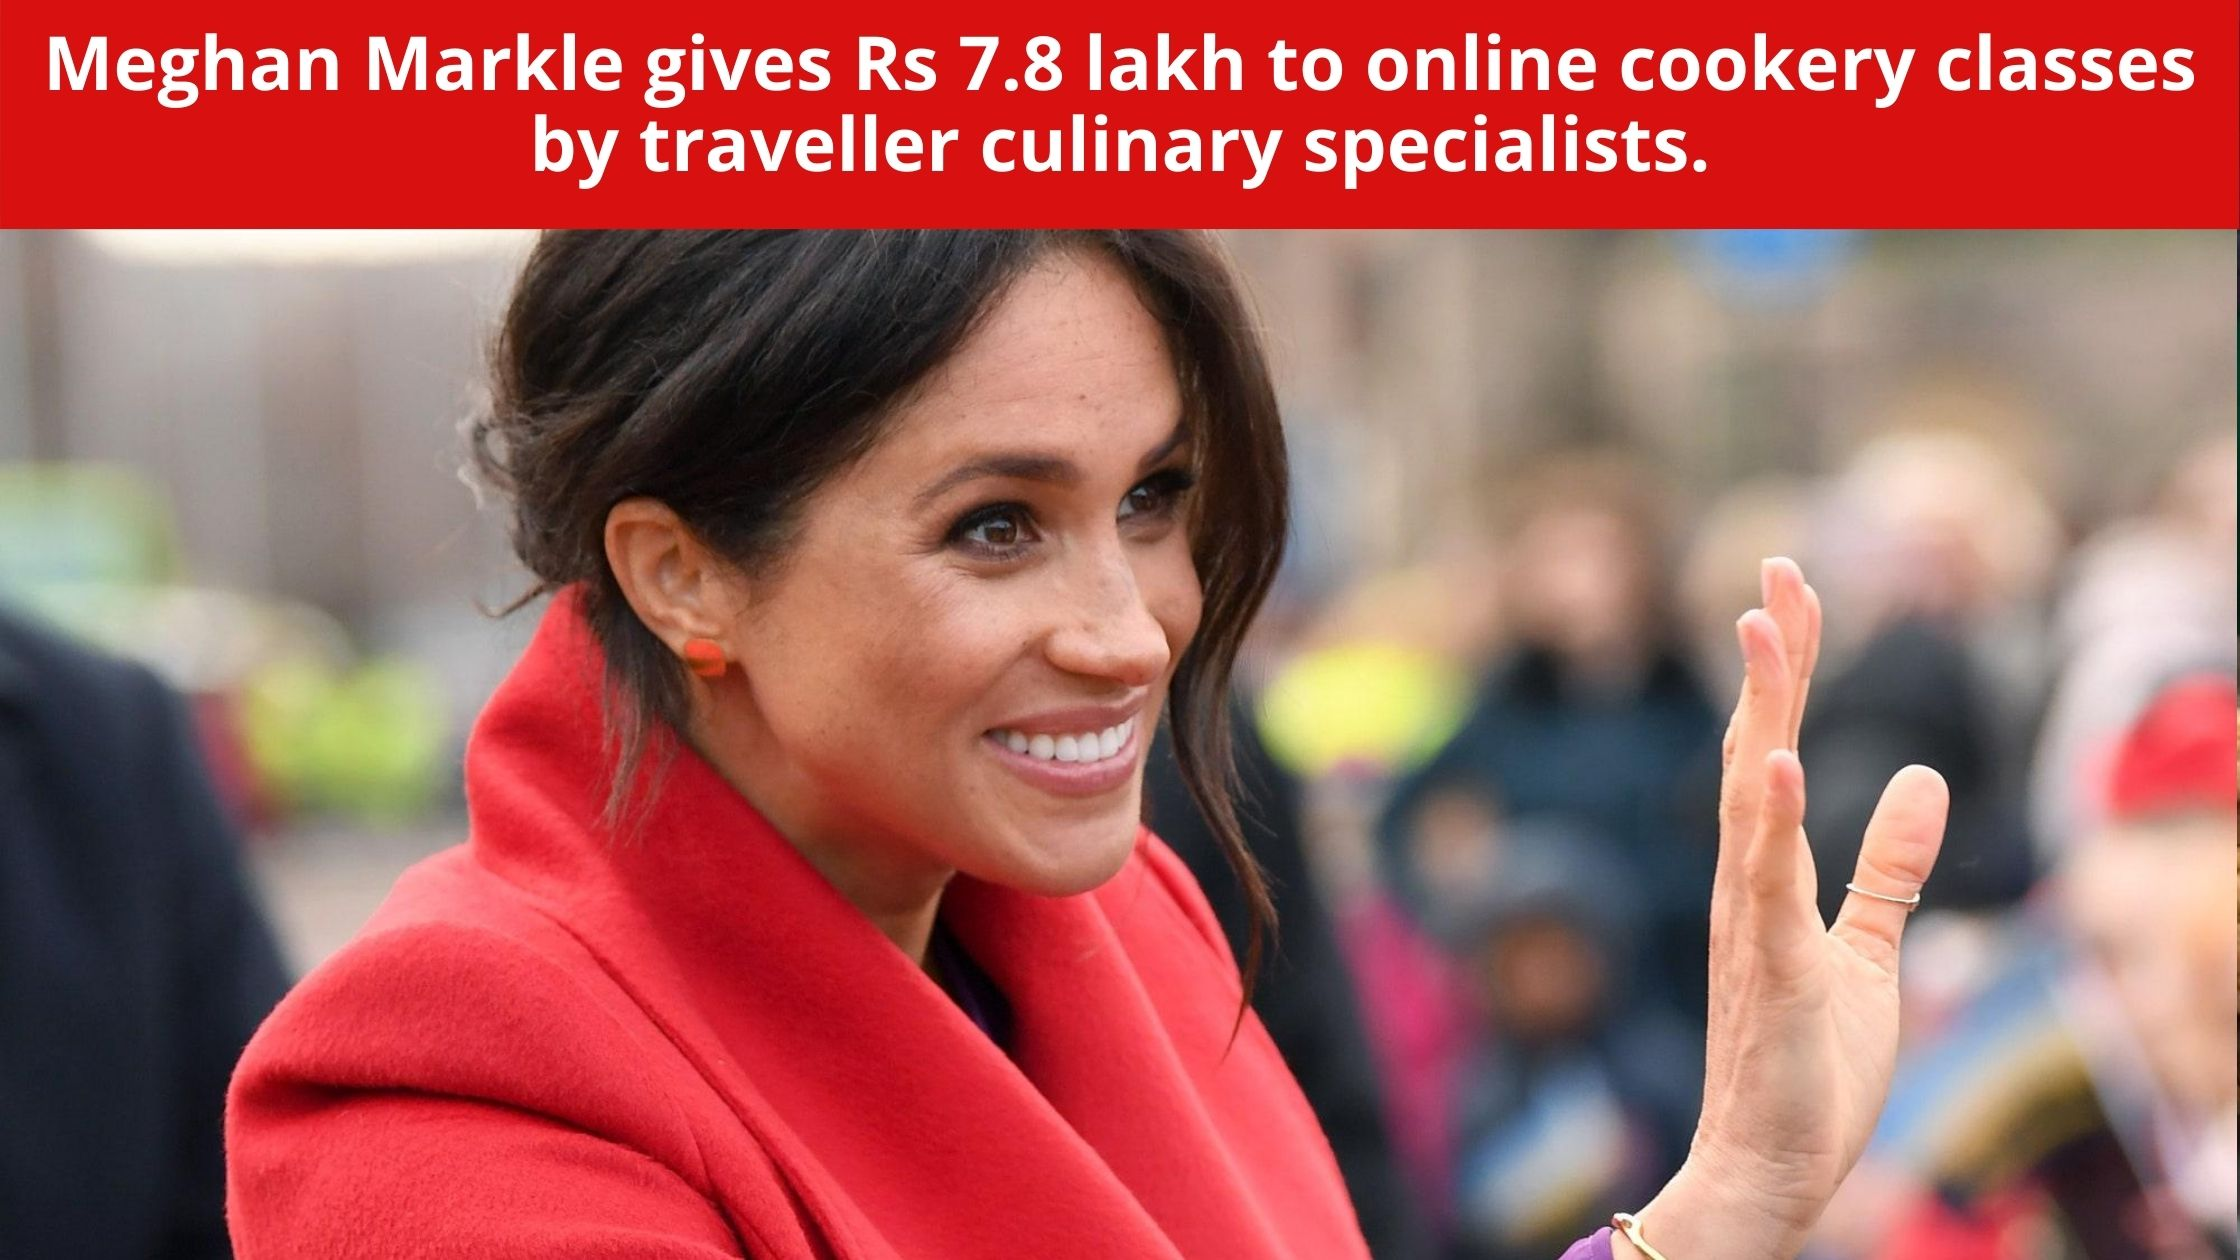 Meghan Markle gives Rs 7.8 lakh to online cookery classes by traveller culinary specialists.